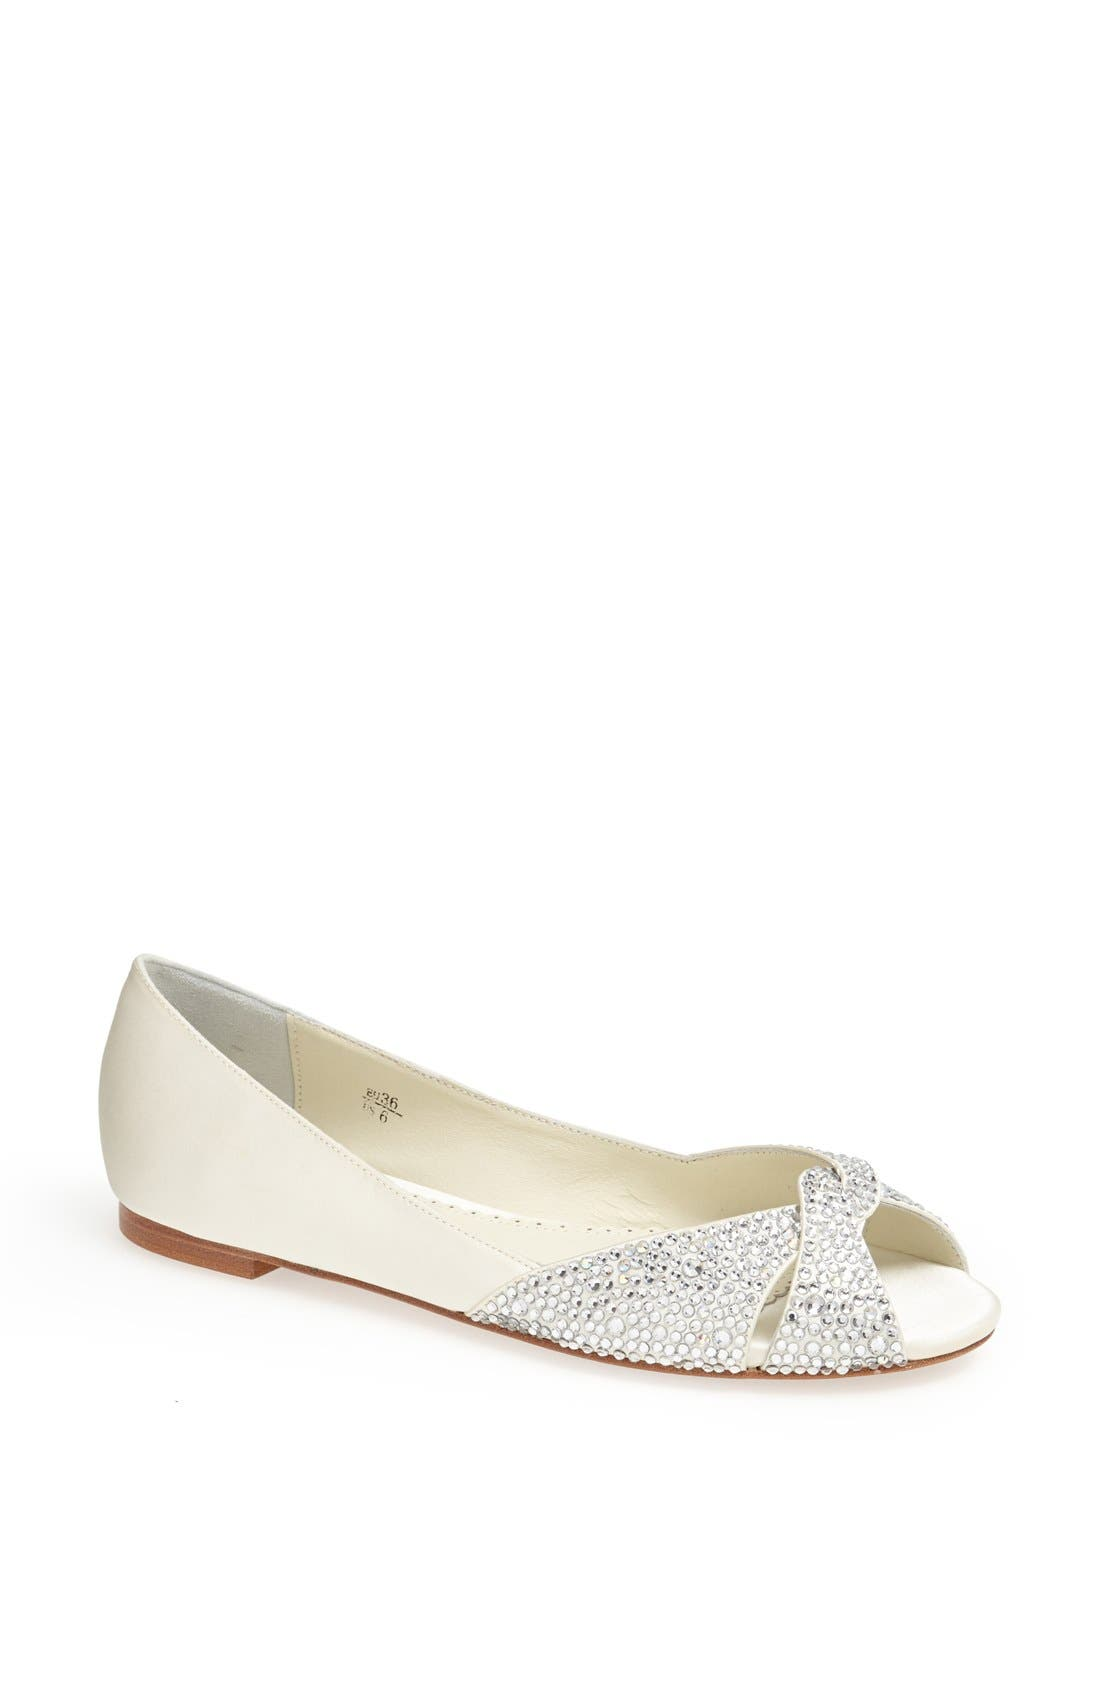 Alternate Image 1 Selected - Benjamin Adams London 'Andie' Crystal Embellished Peep Toe Flat